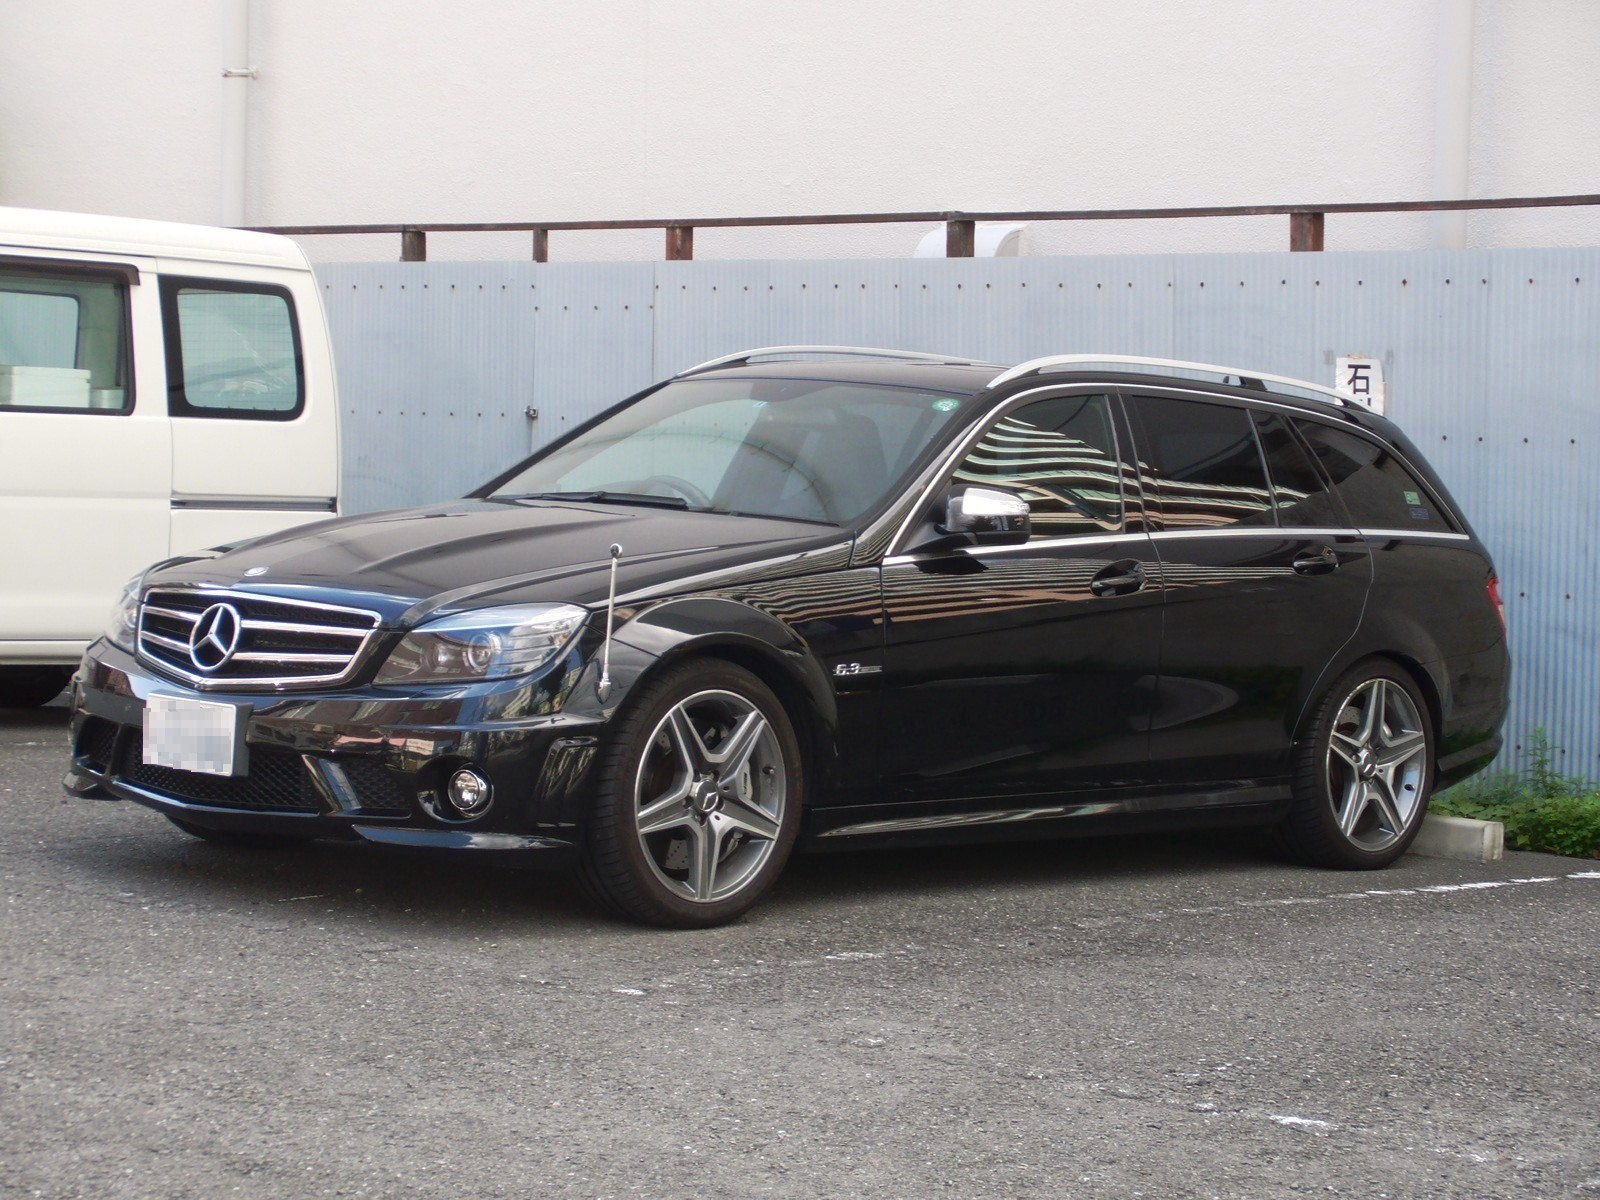 file mercedes benz c63 amg station wagon s204 jpg wikimedia. Cars Review. Best American Auto & Cars Review